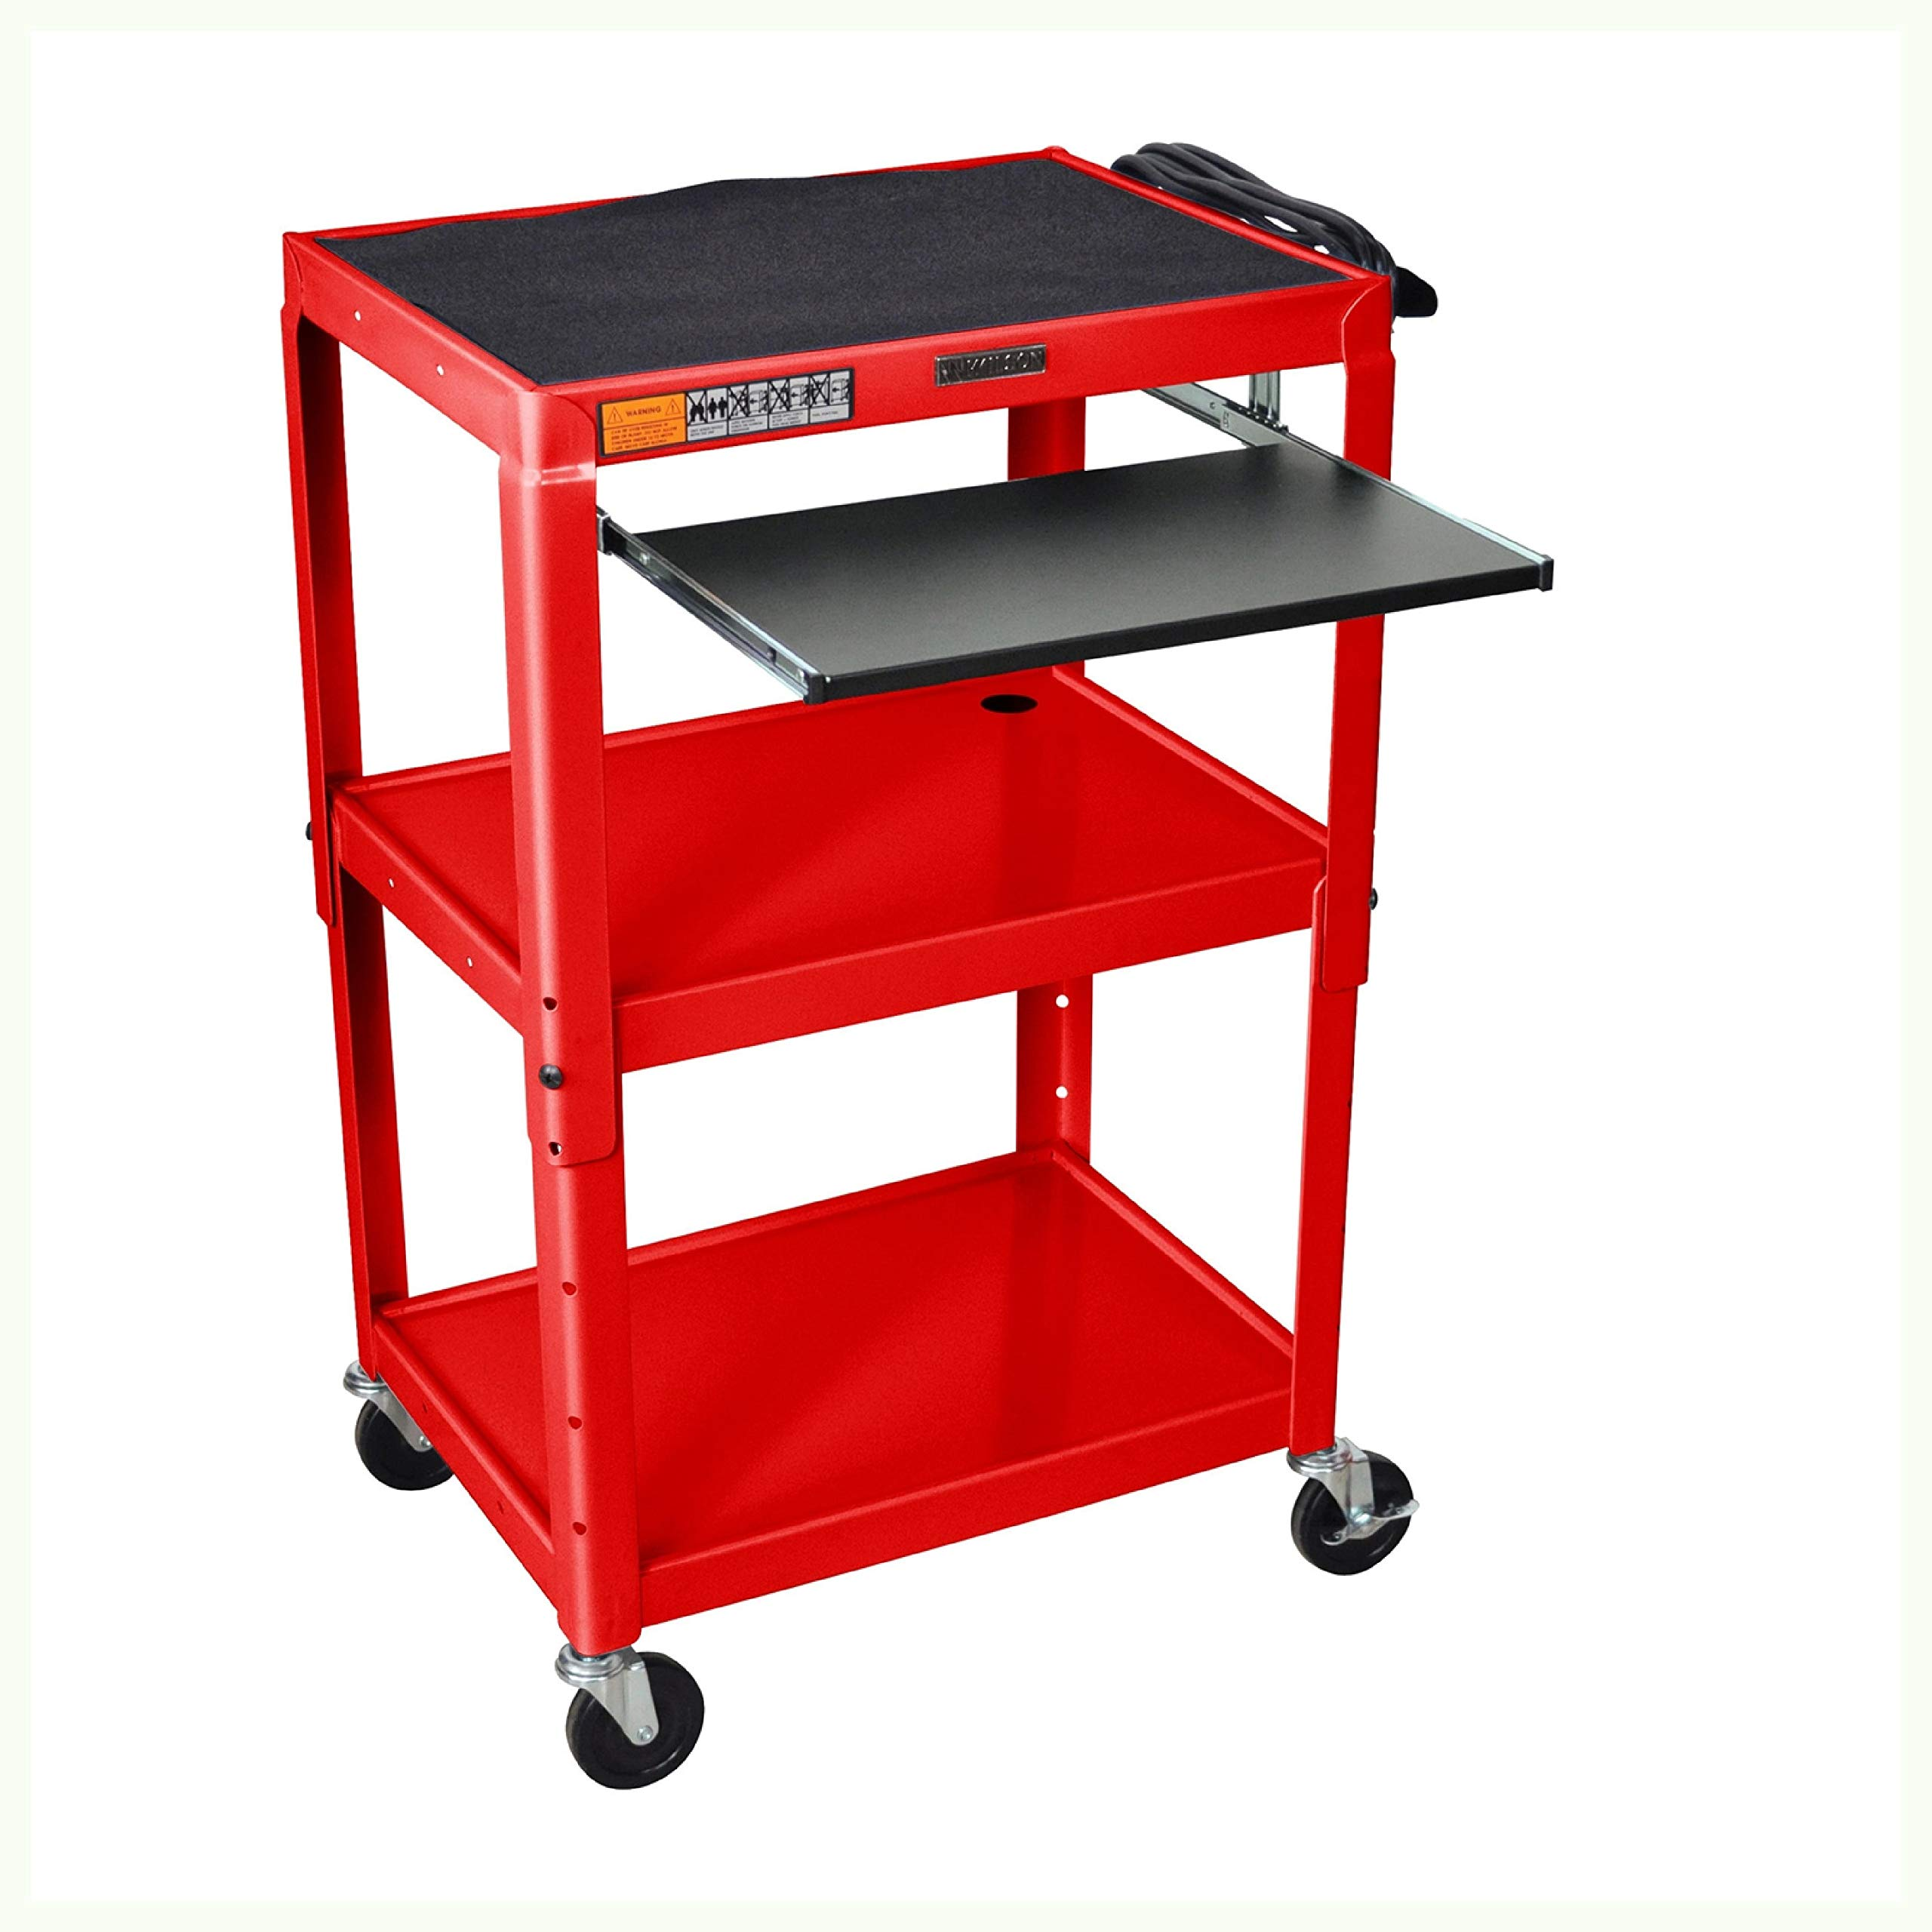 HEATAPPLY Mobile Stand Up Computer Desk Workstation Cart in Red Steel by HEATAPPLY